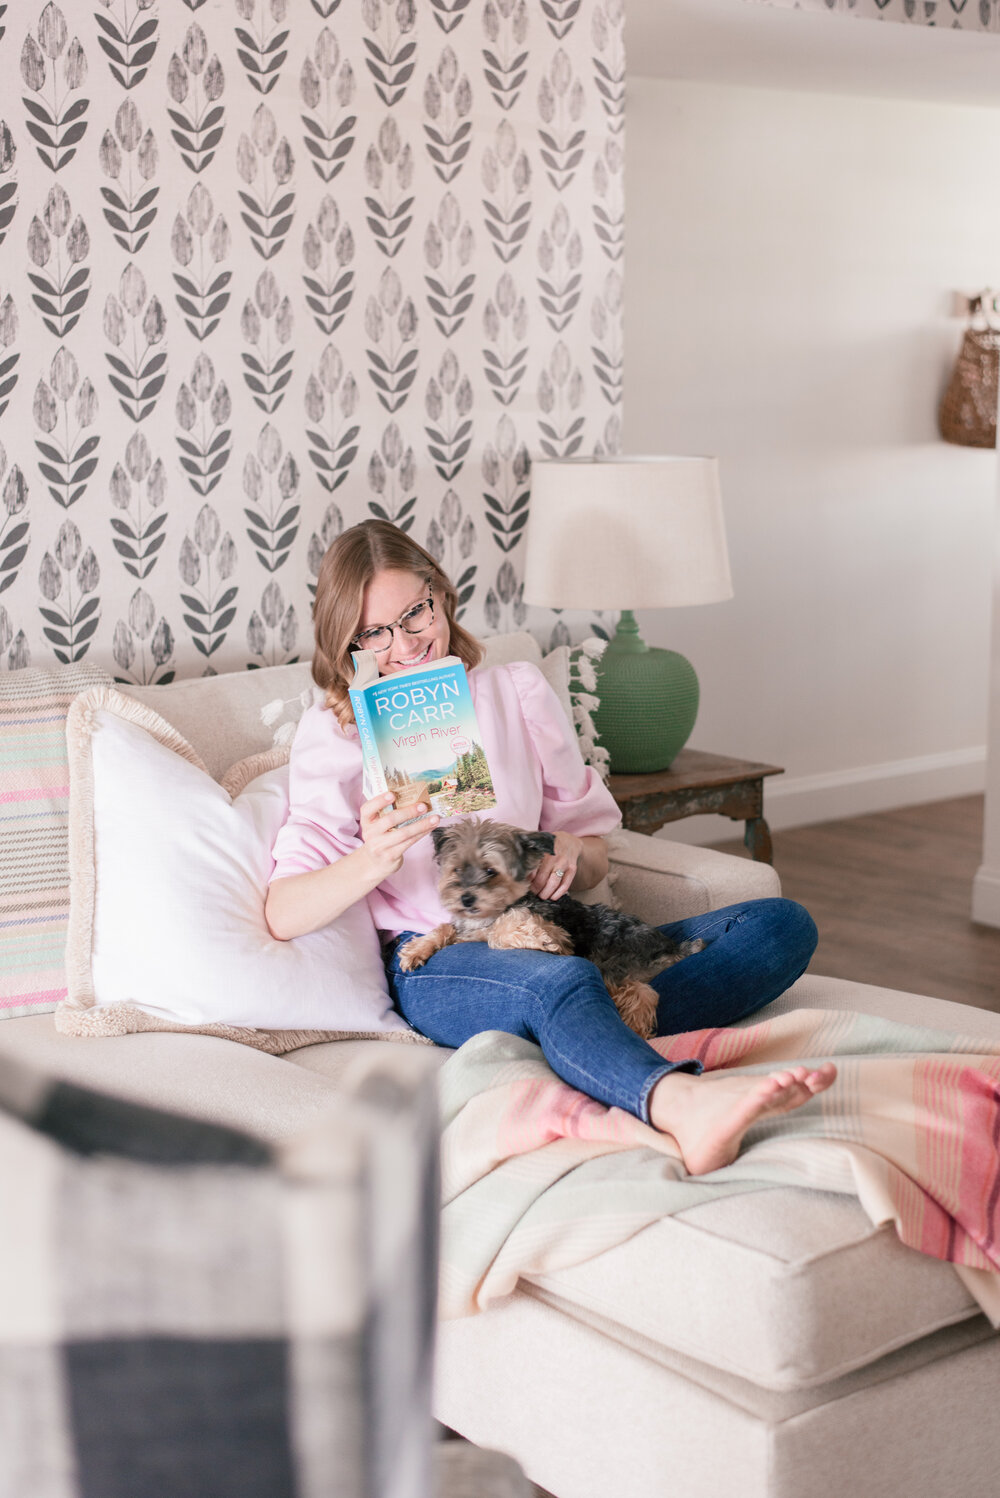 Virgin River book Series Review reviewed by top Phoenix life and style blog, Love and Specs